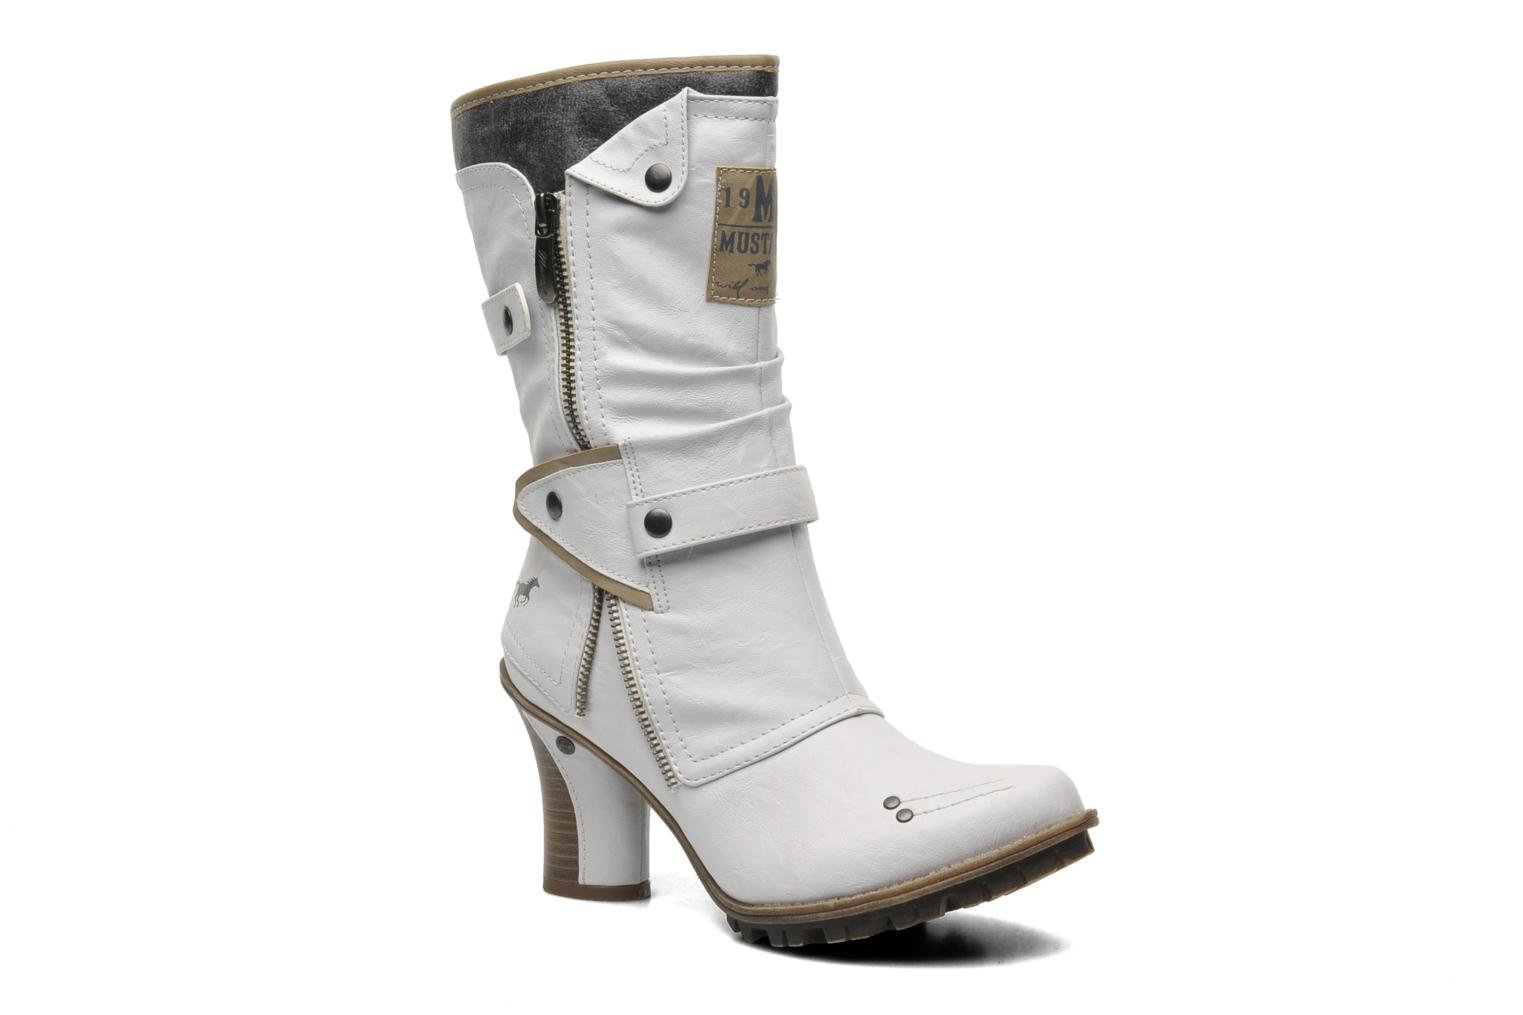 Marques Chaussure femme Mustang shoes femme Lazlo Offwhite